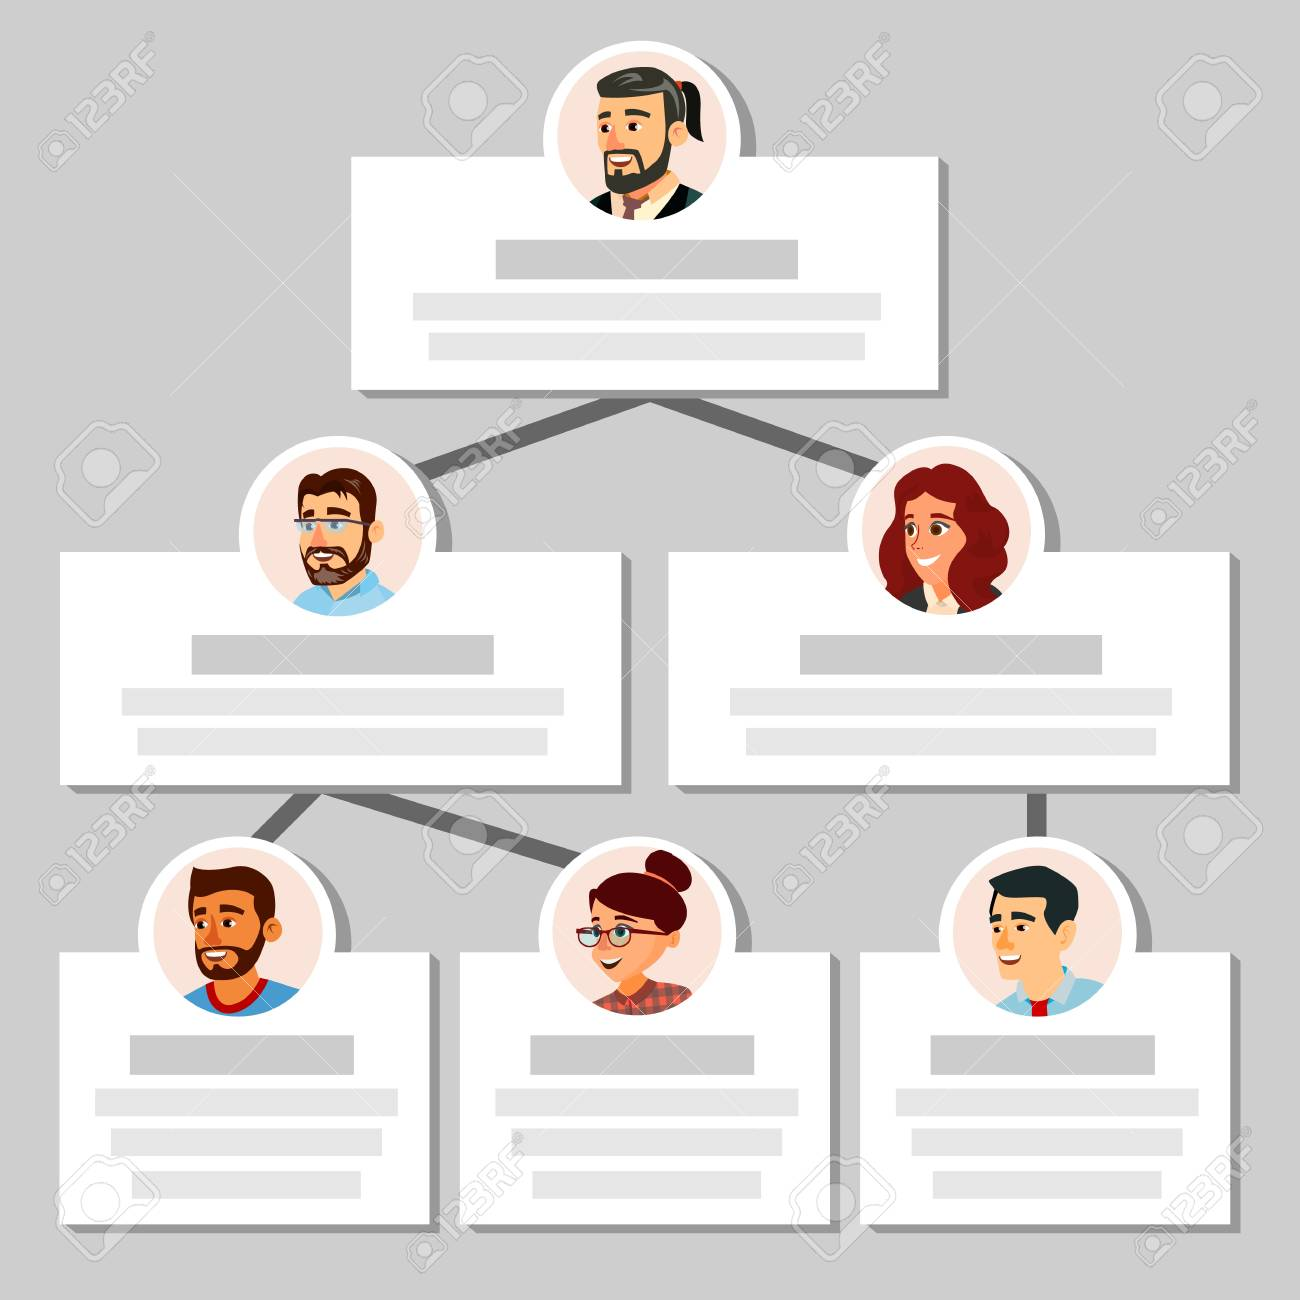 Hierarchy Organizational Chart Template Image collections - Template ...